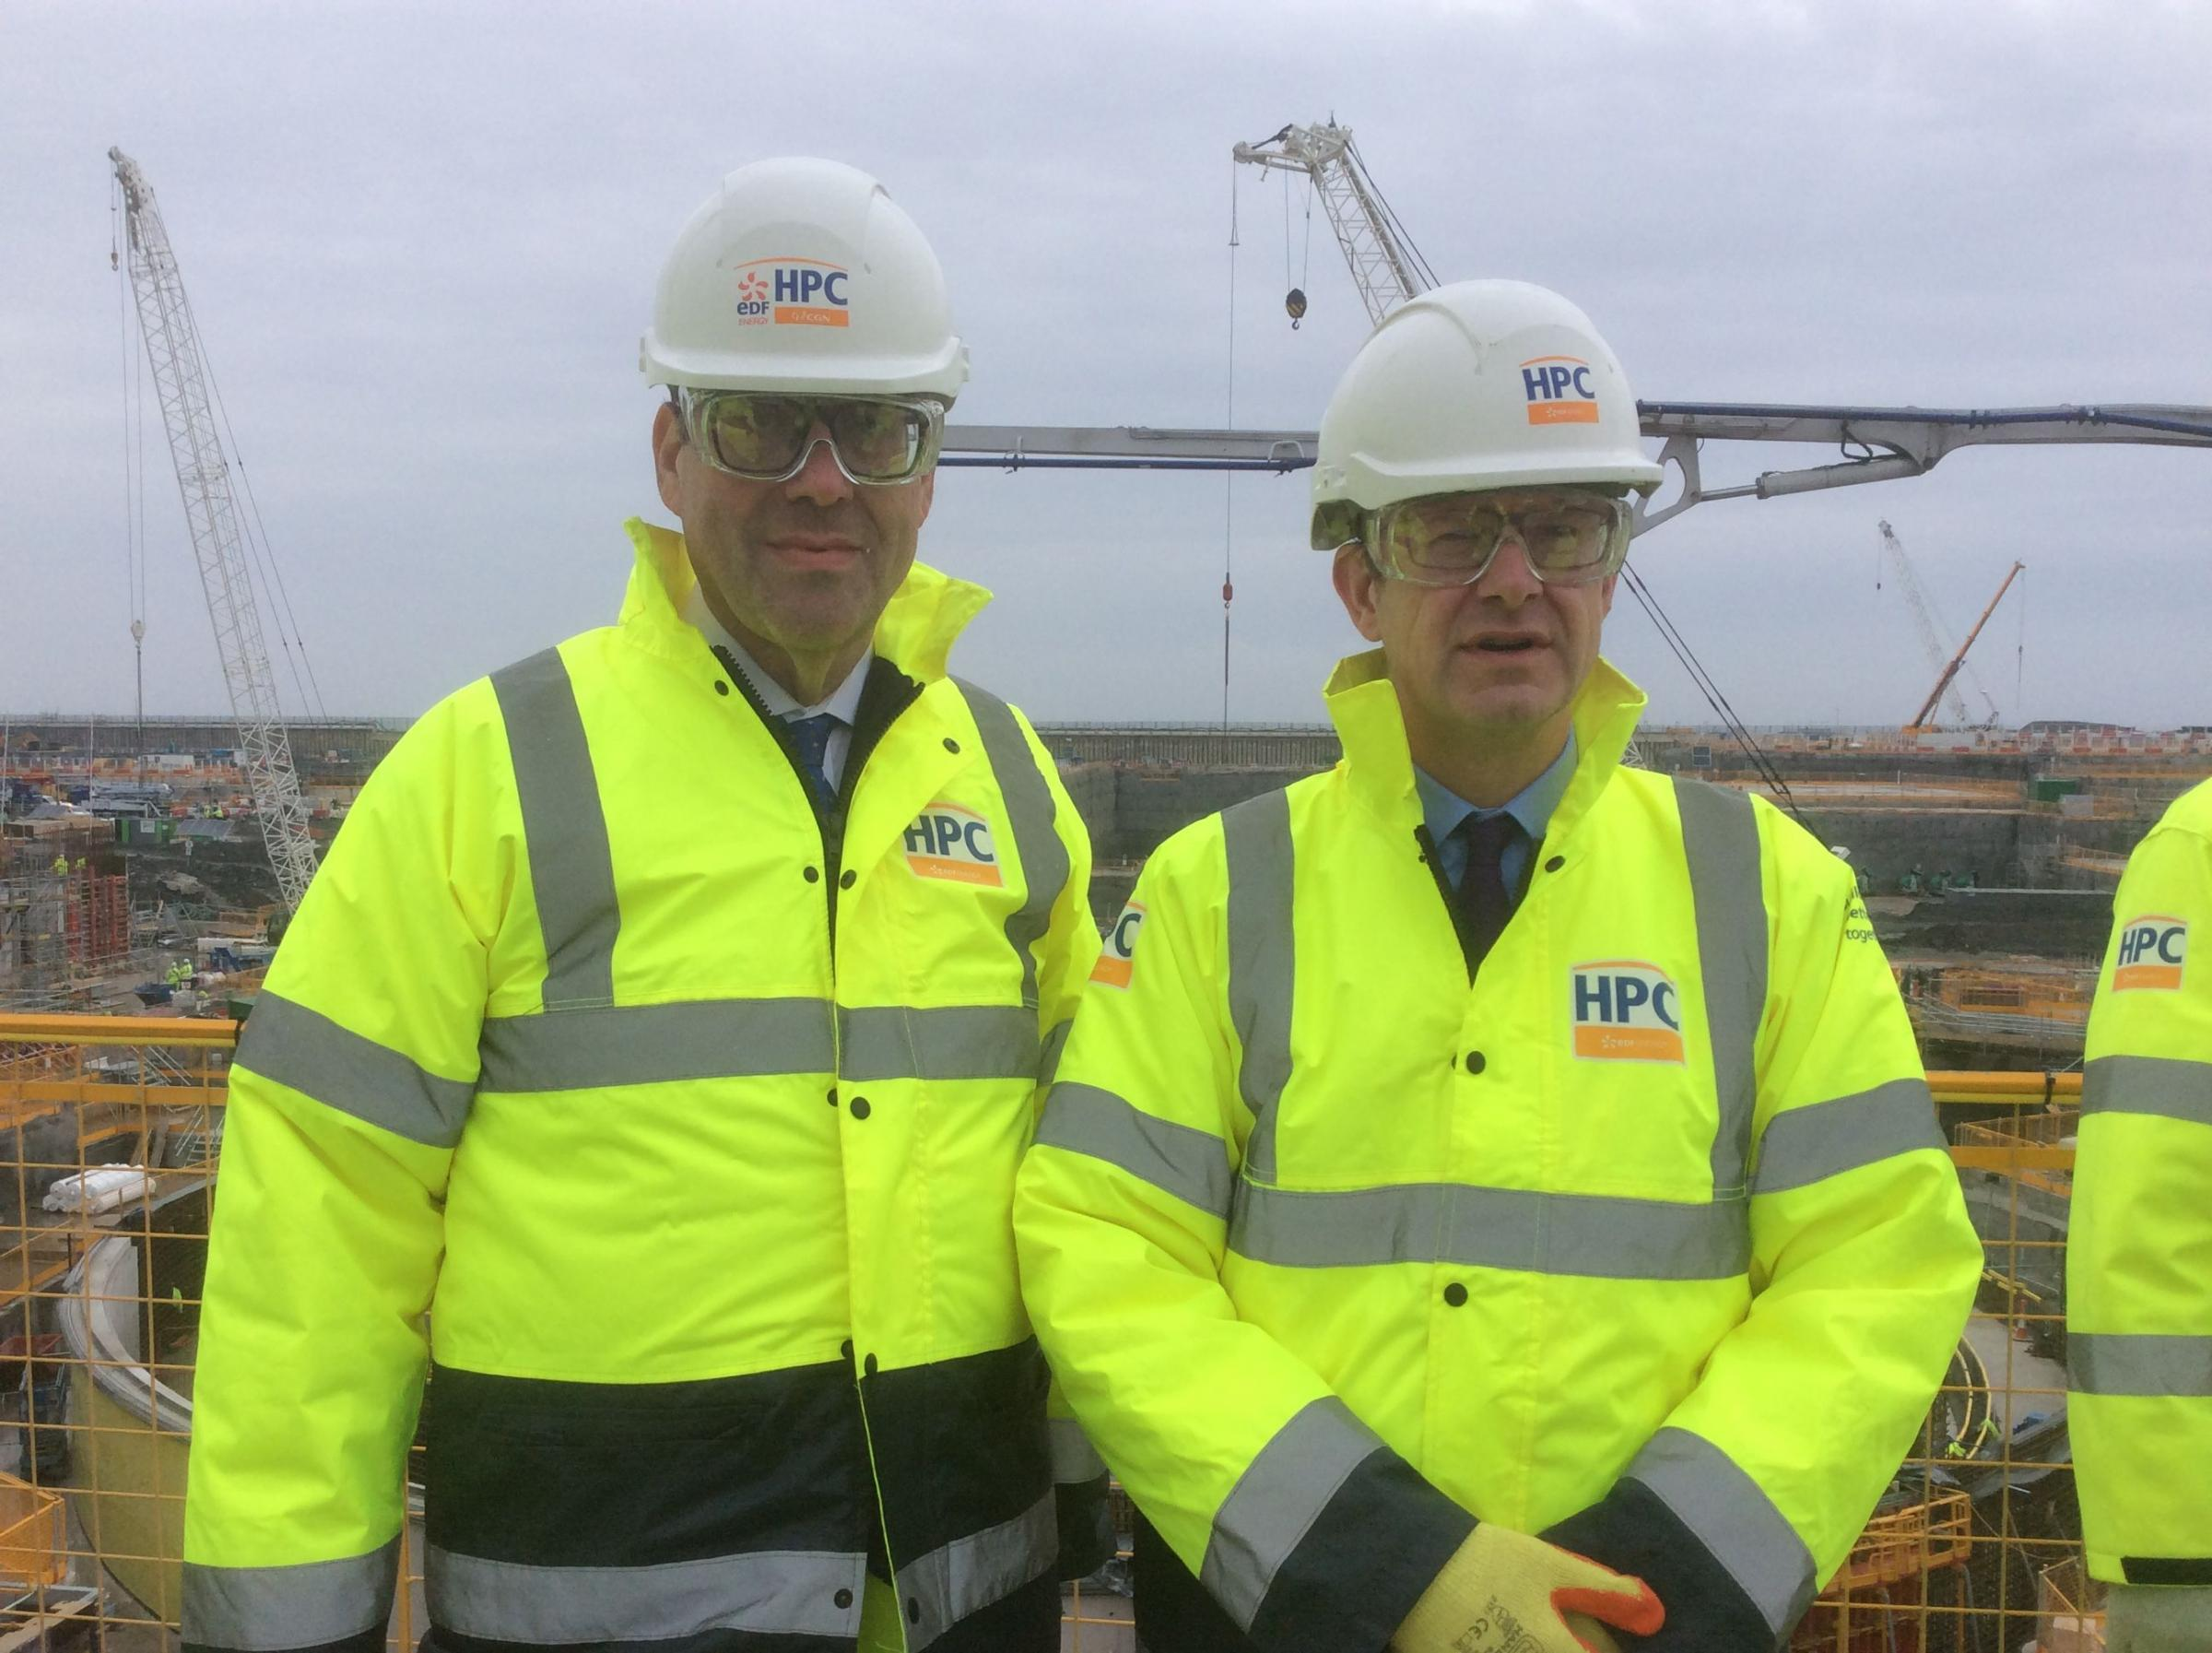 VISIT: Energy minister Richard Harrington and with Business Secretary Greg Clark